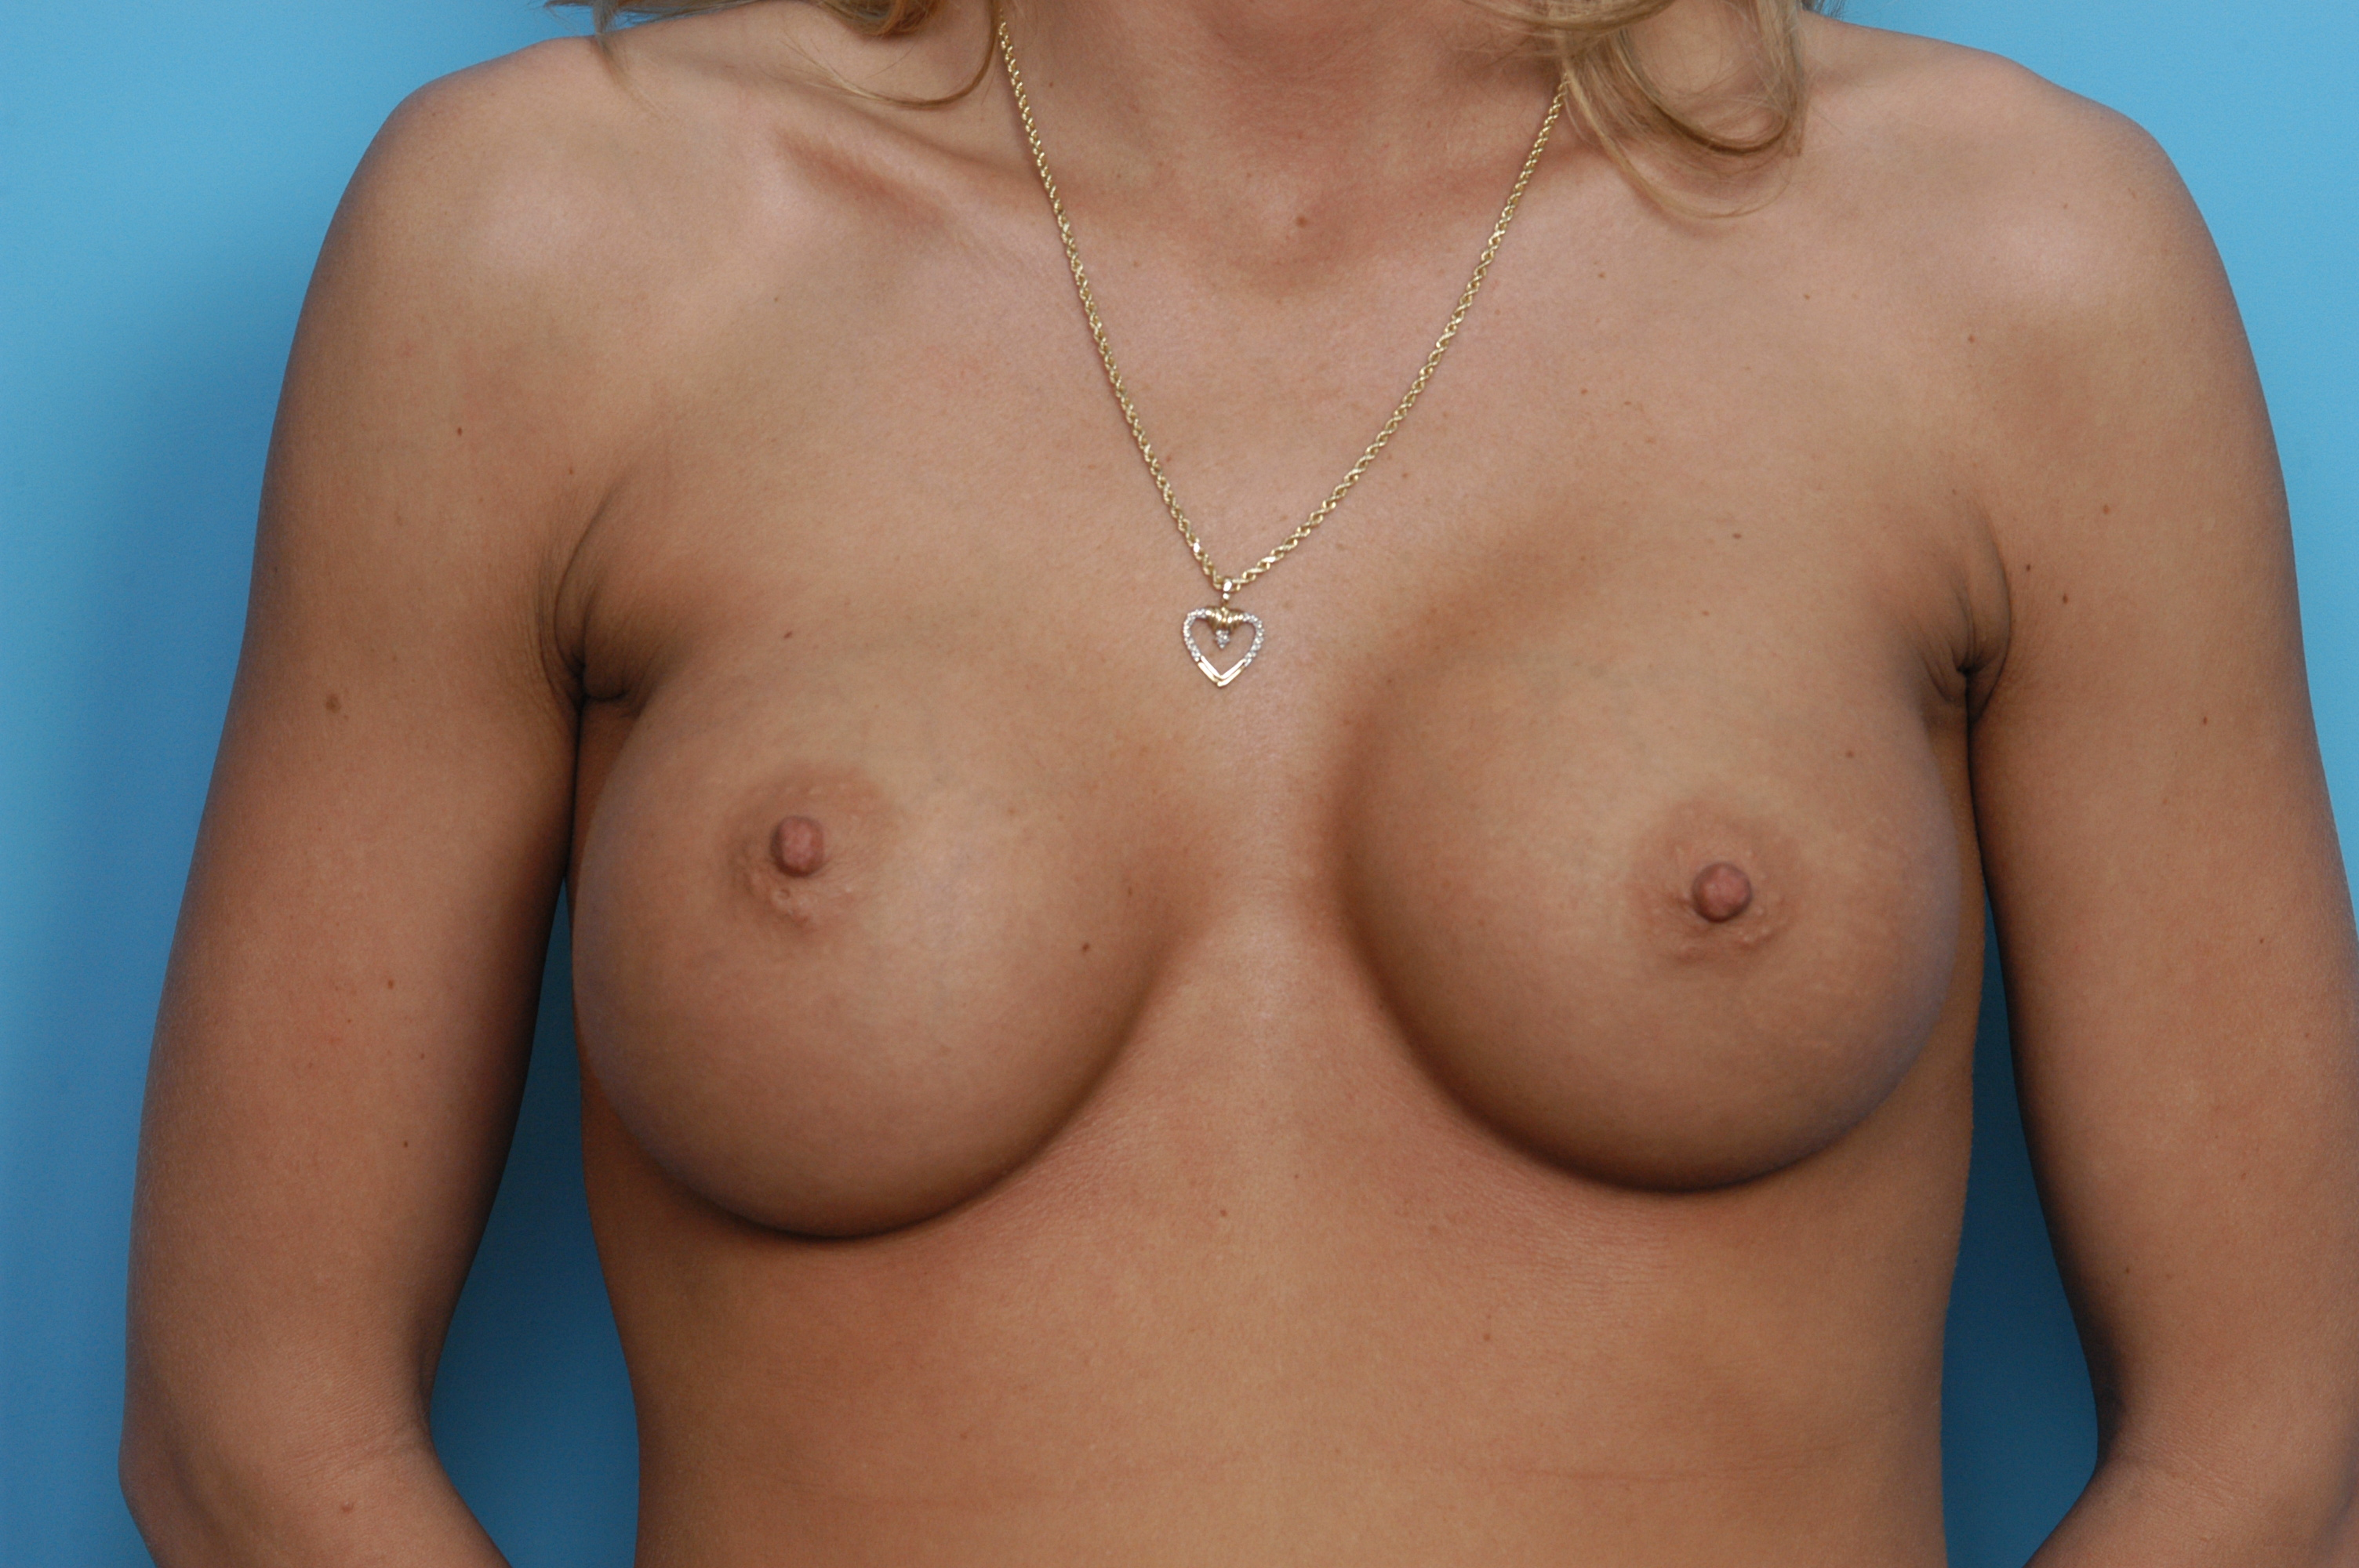 http://exploreplasticsurgery.com/wp-content/uploads/2009/02/breast-asymmetry-indianapolis-dr-barry-eppley.jpg